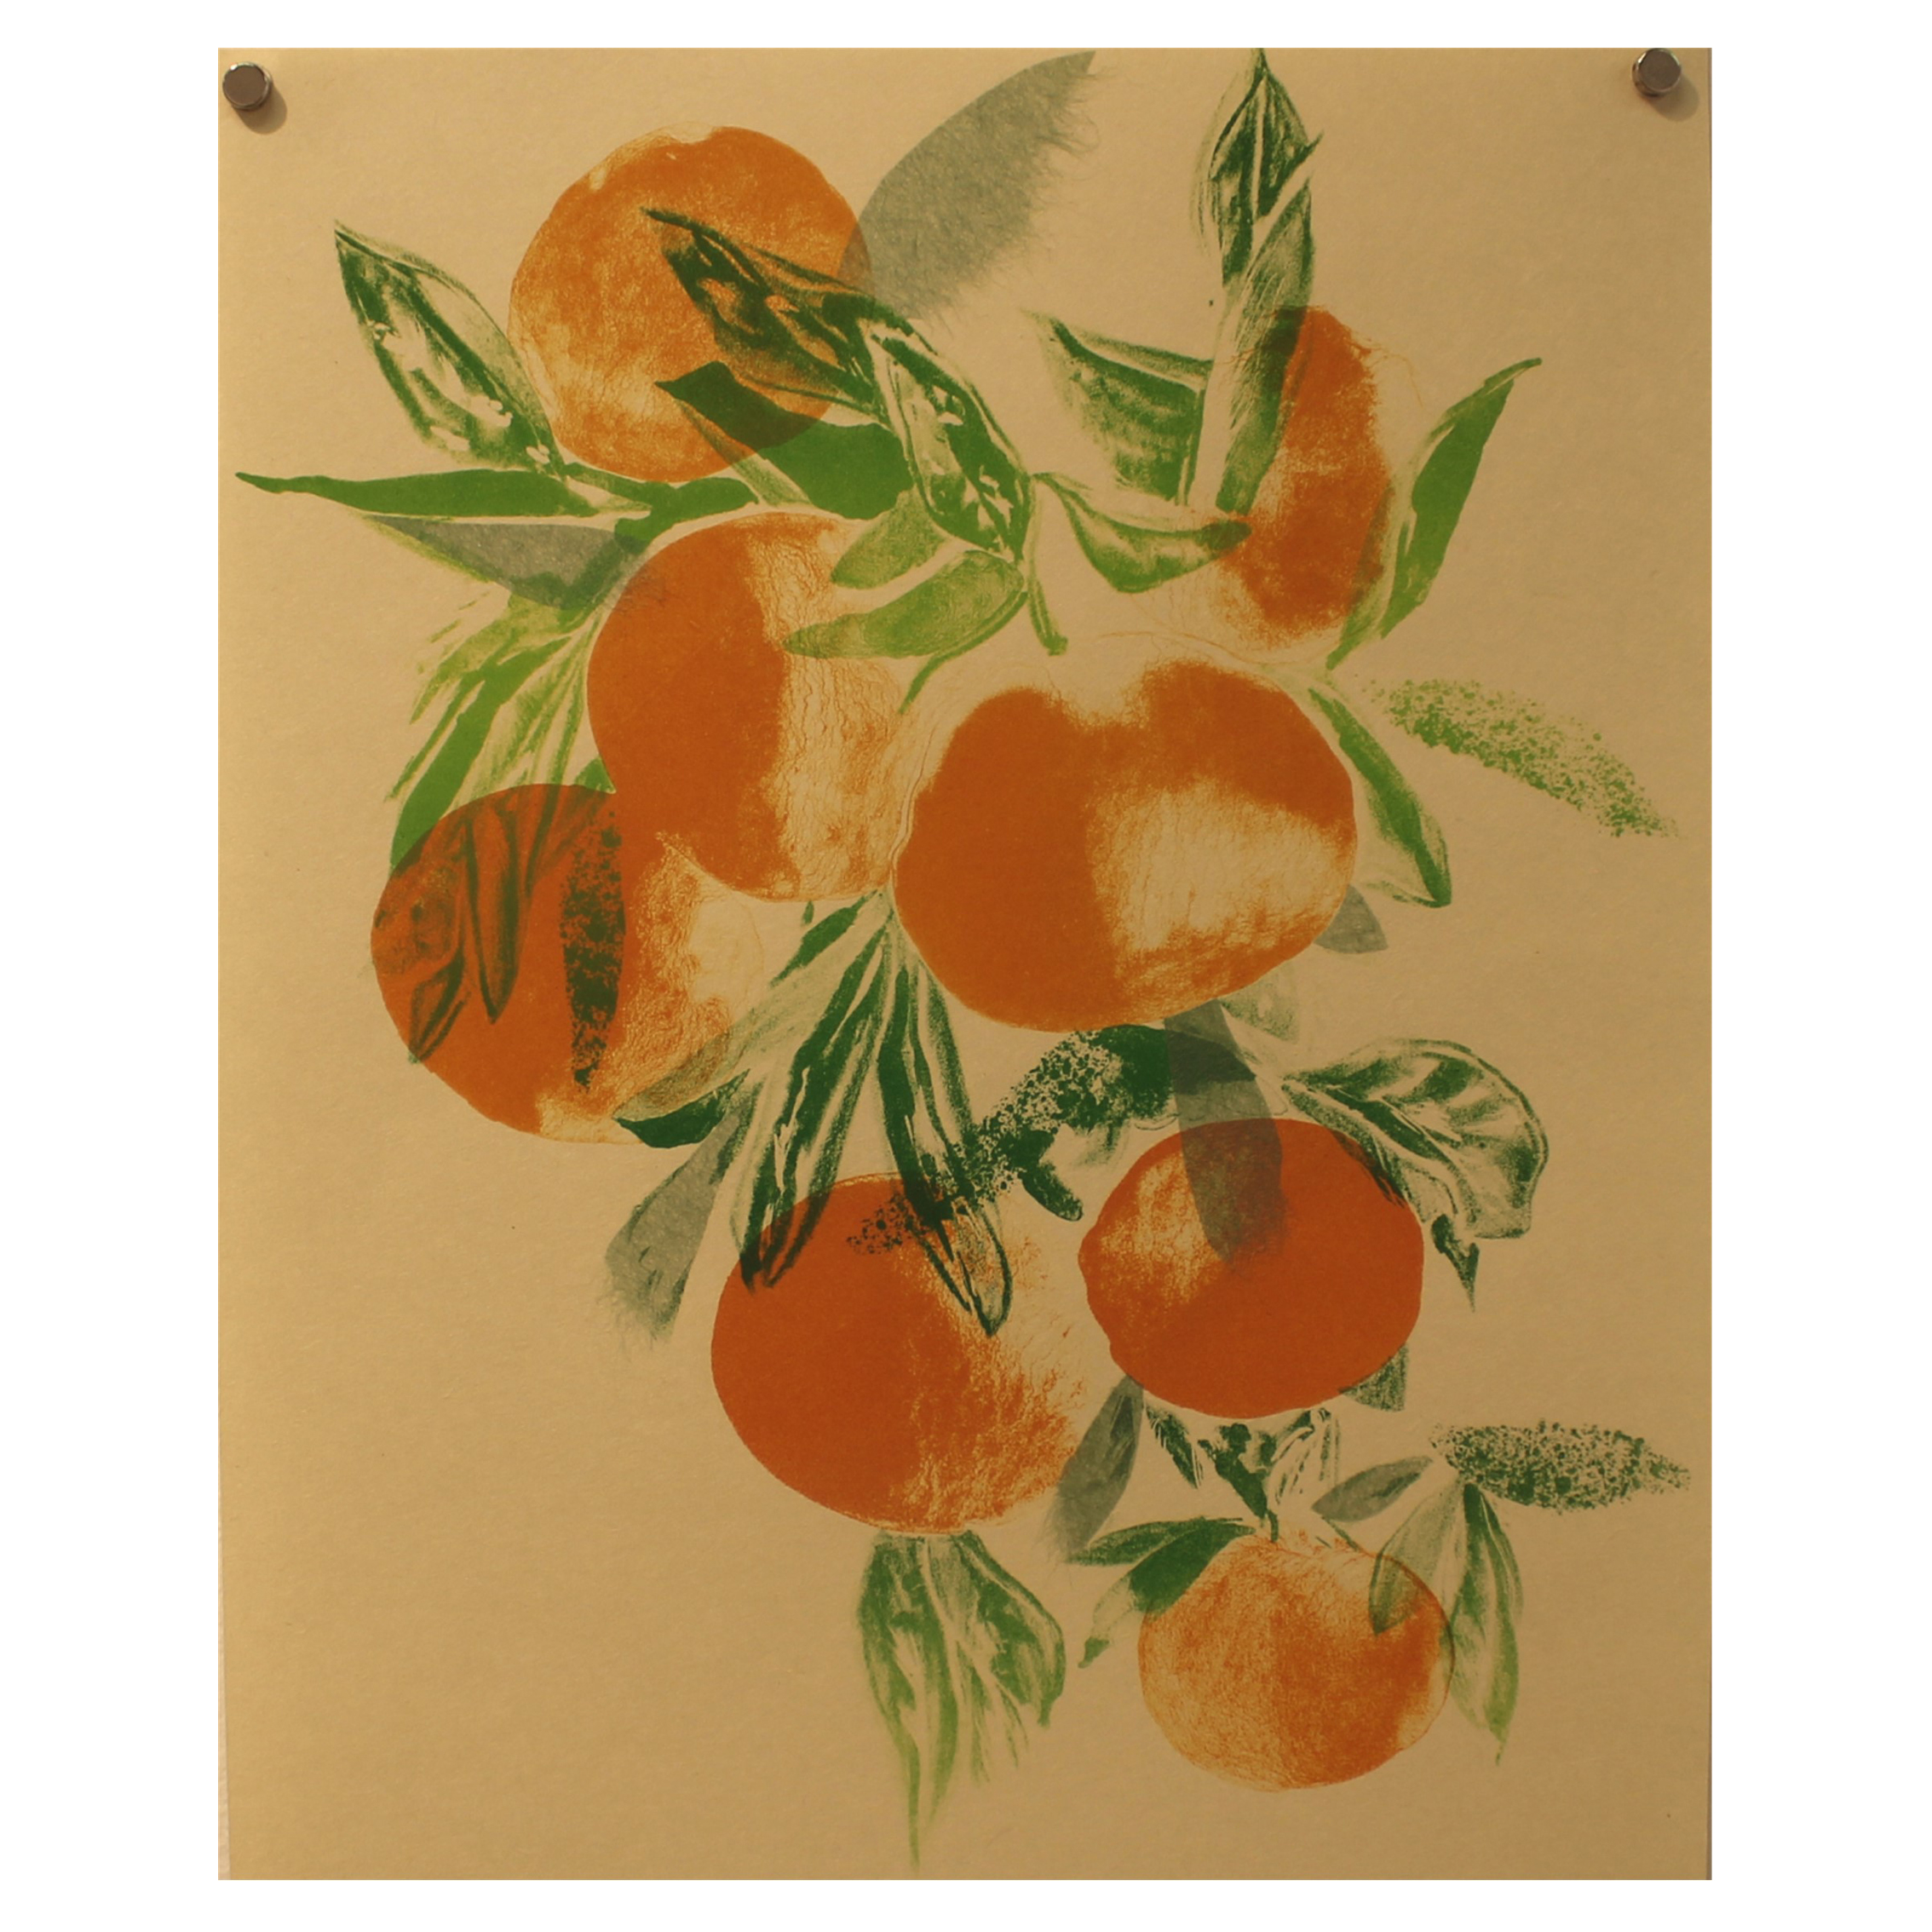 Amy Uyeda, More Mikans, 2016, lithograph